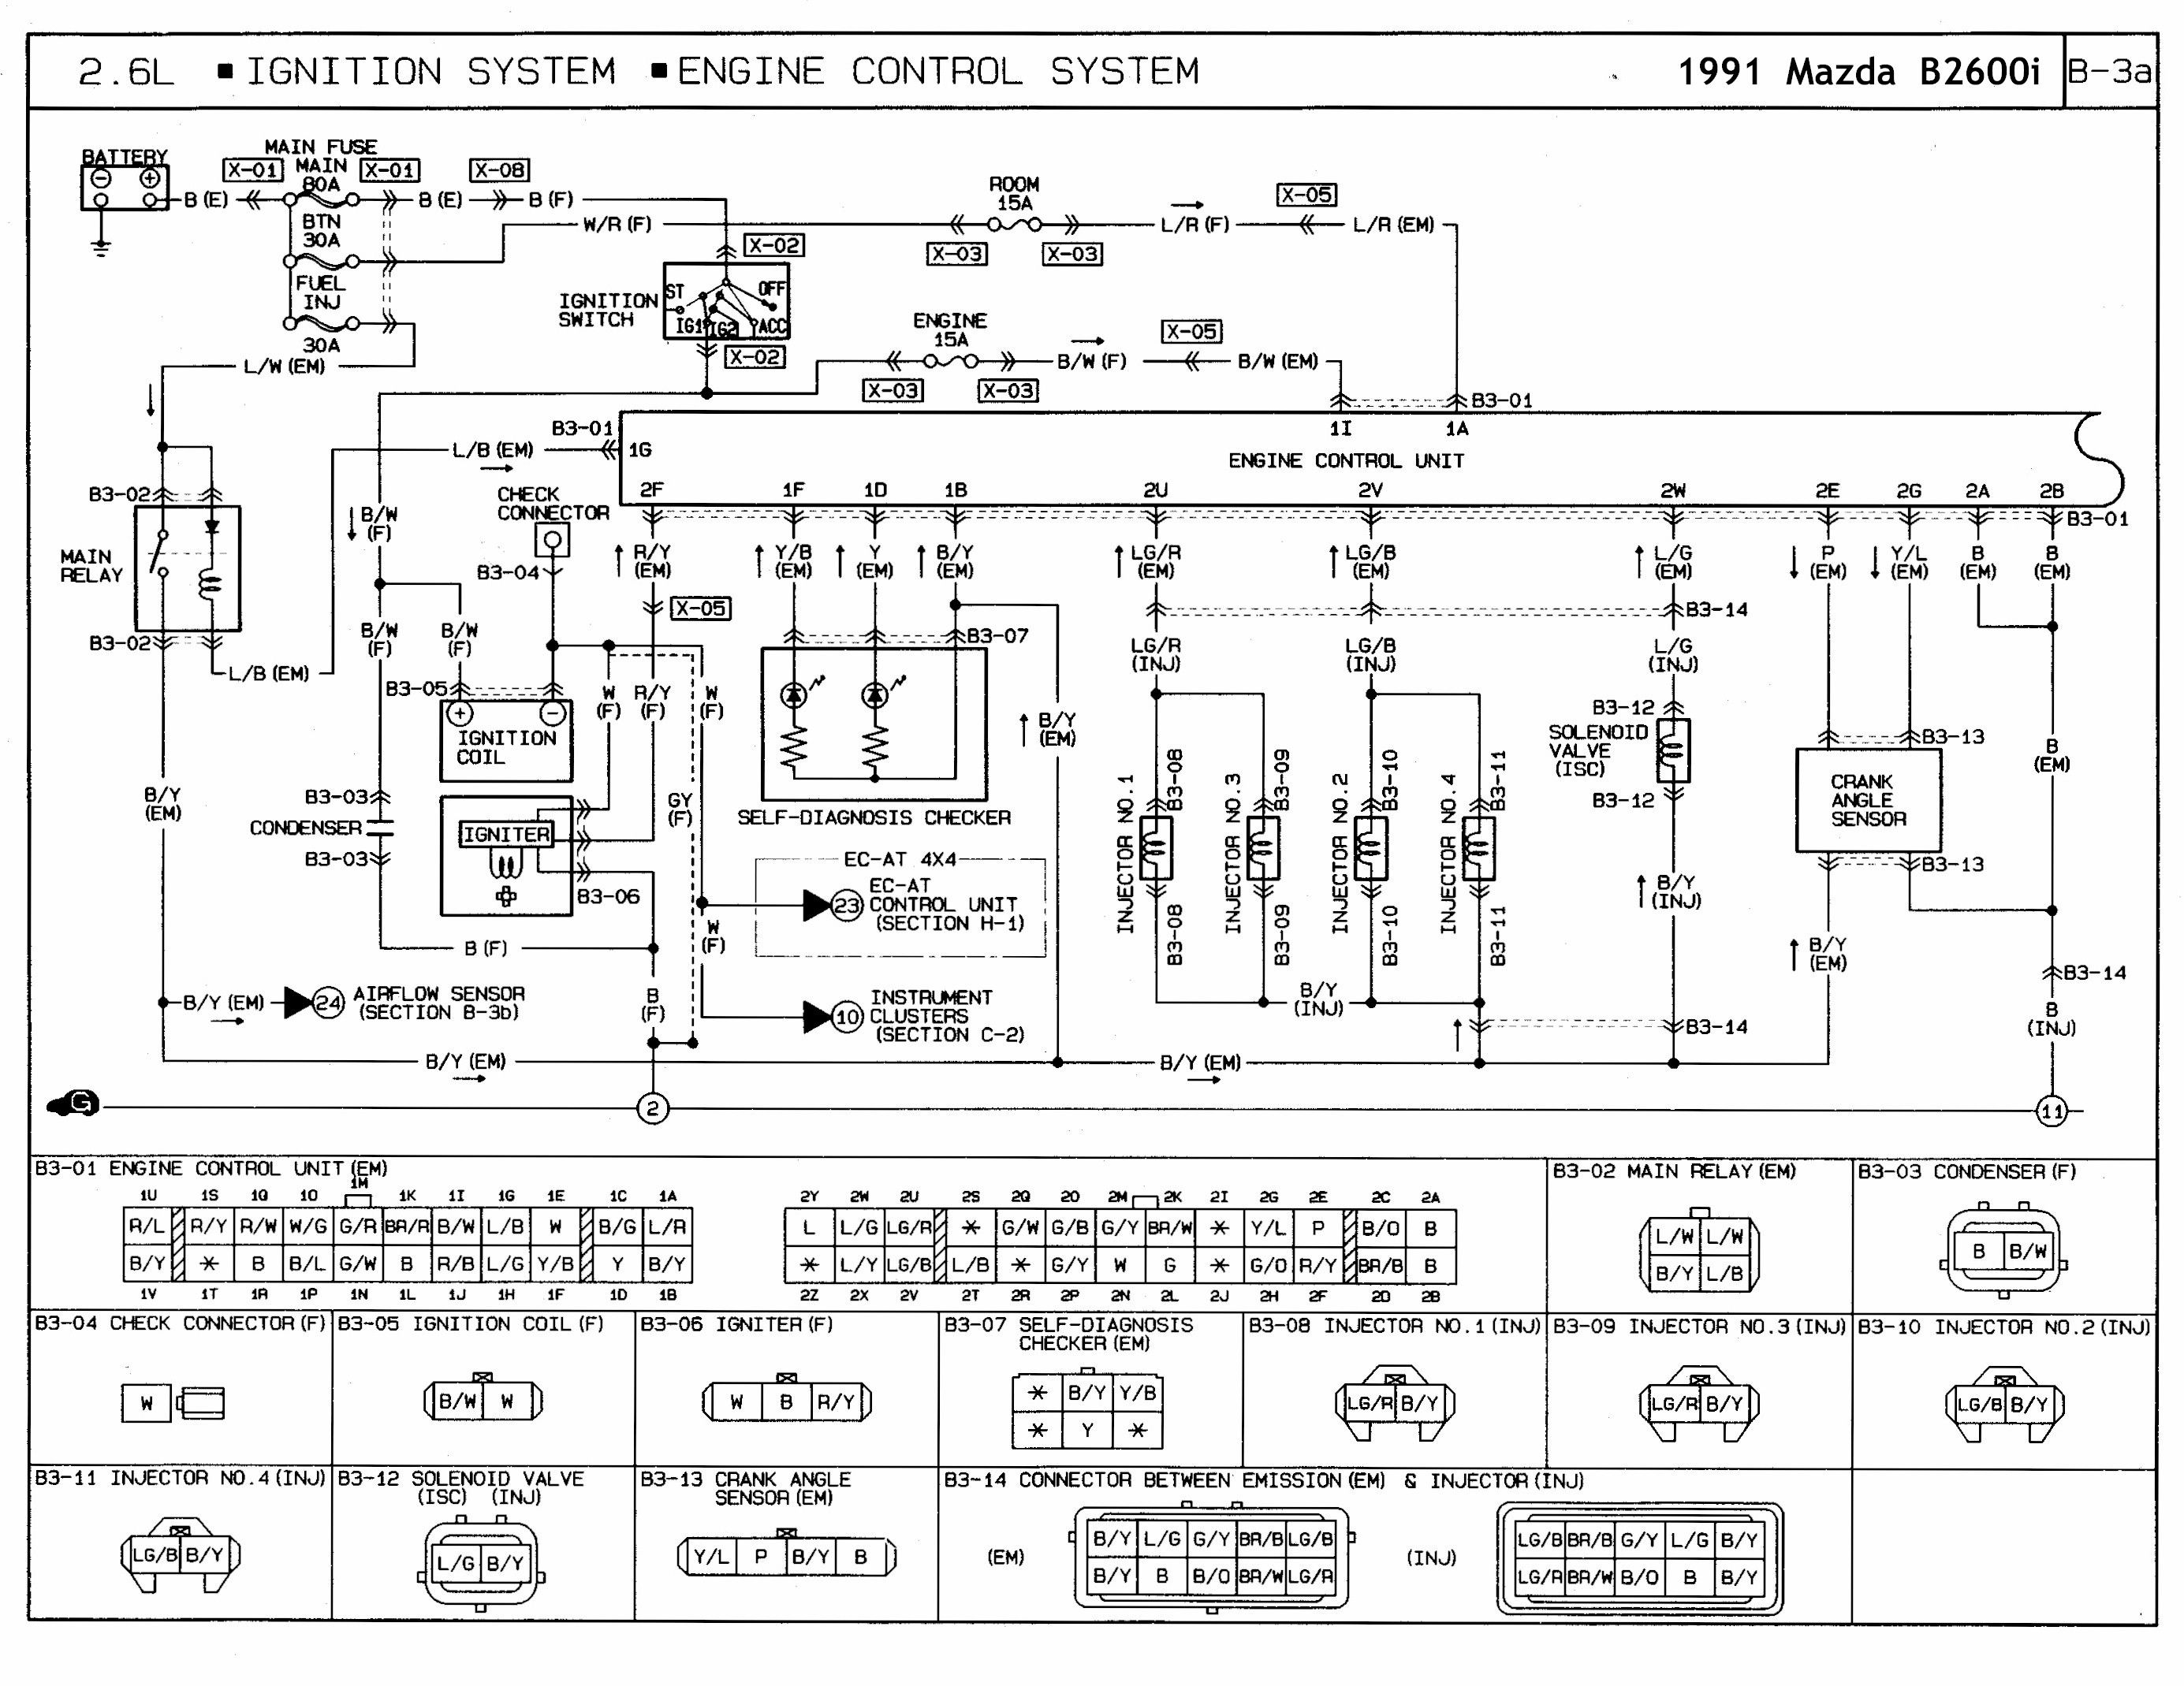 1991 Mazda B2600i Engine Control Wiring Diagram In 2020 Electrical Wiring Diagram Ignition System Diagram